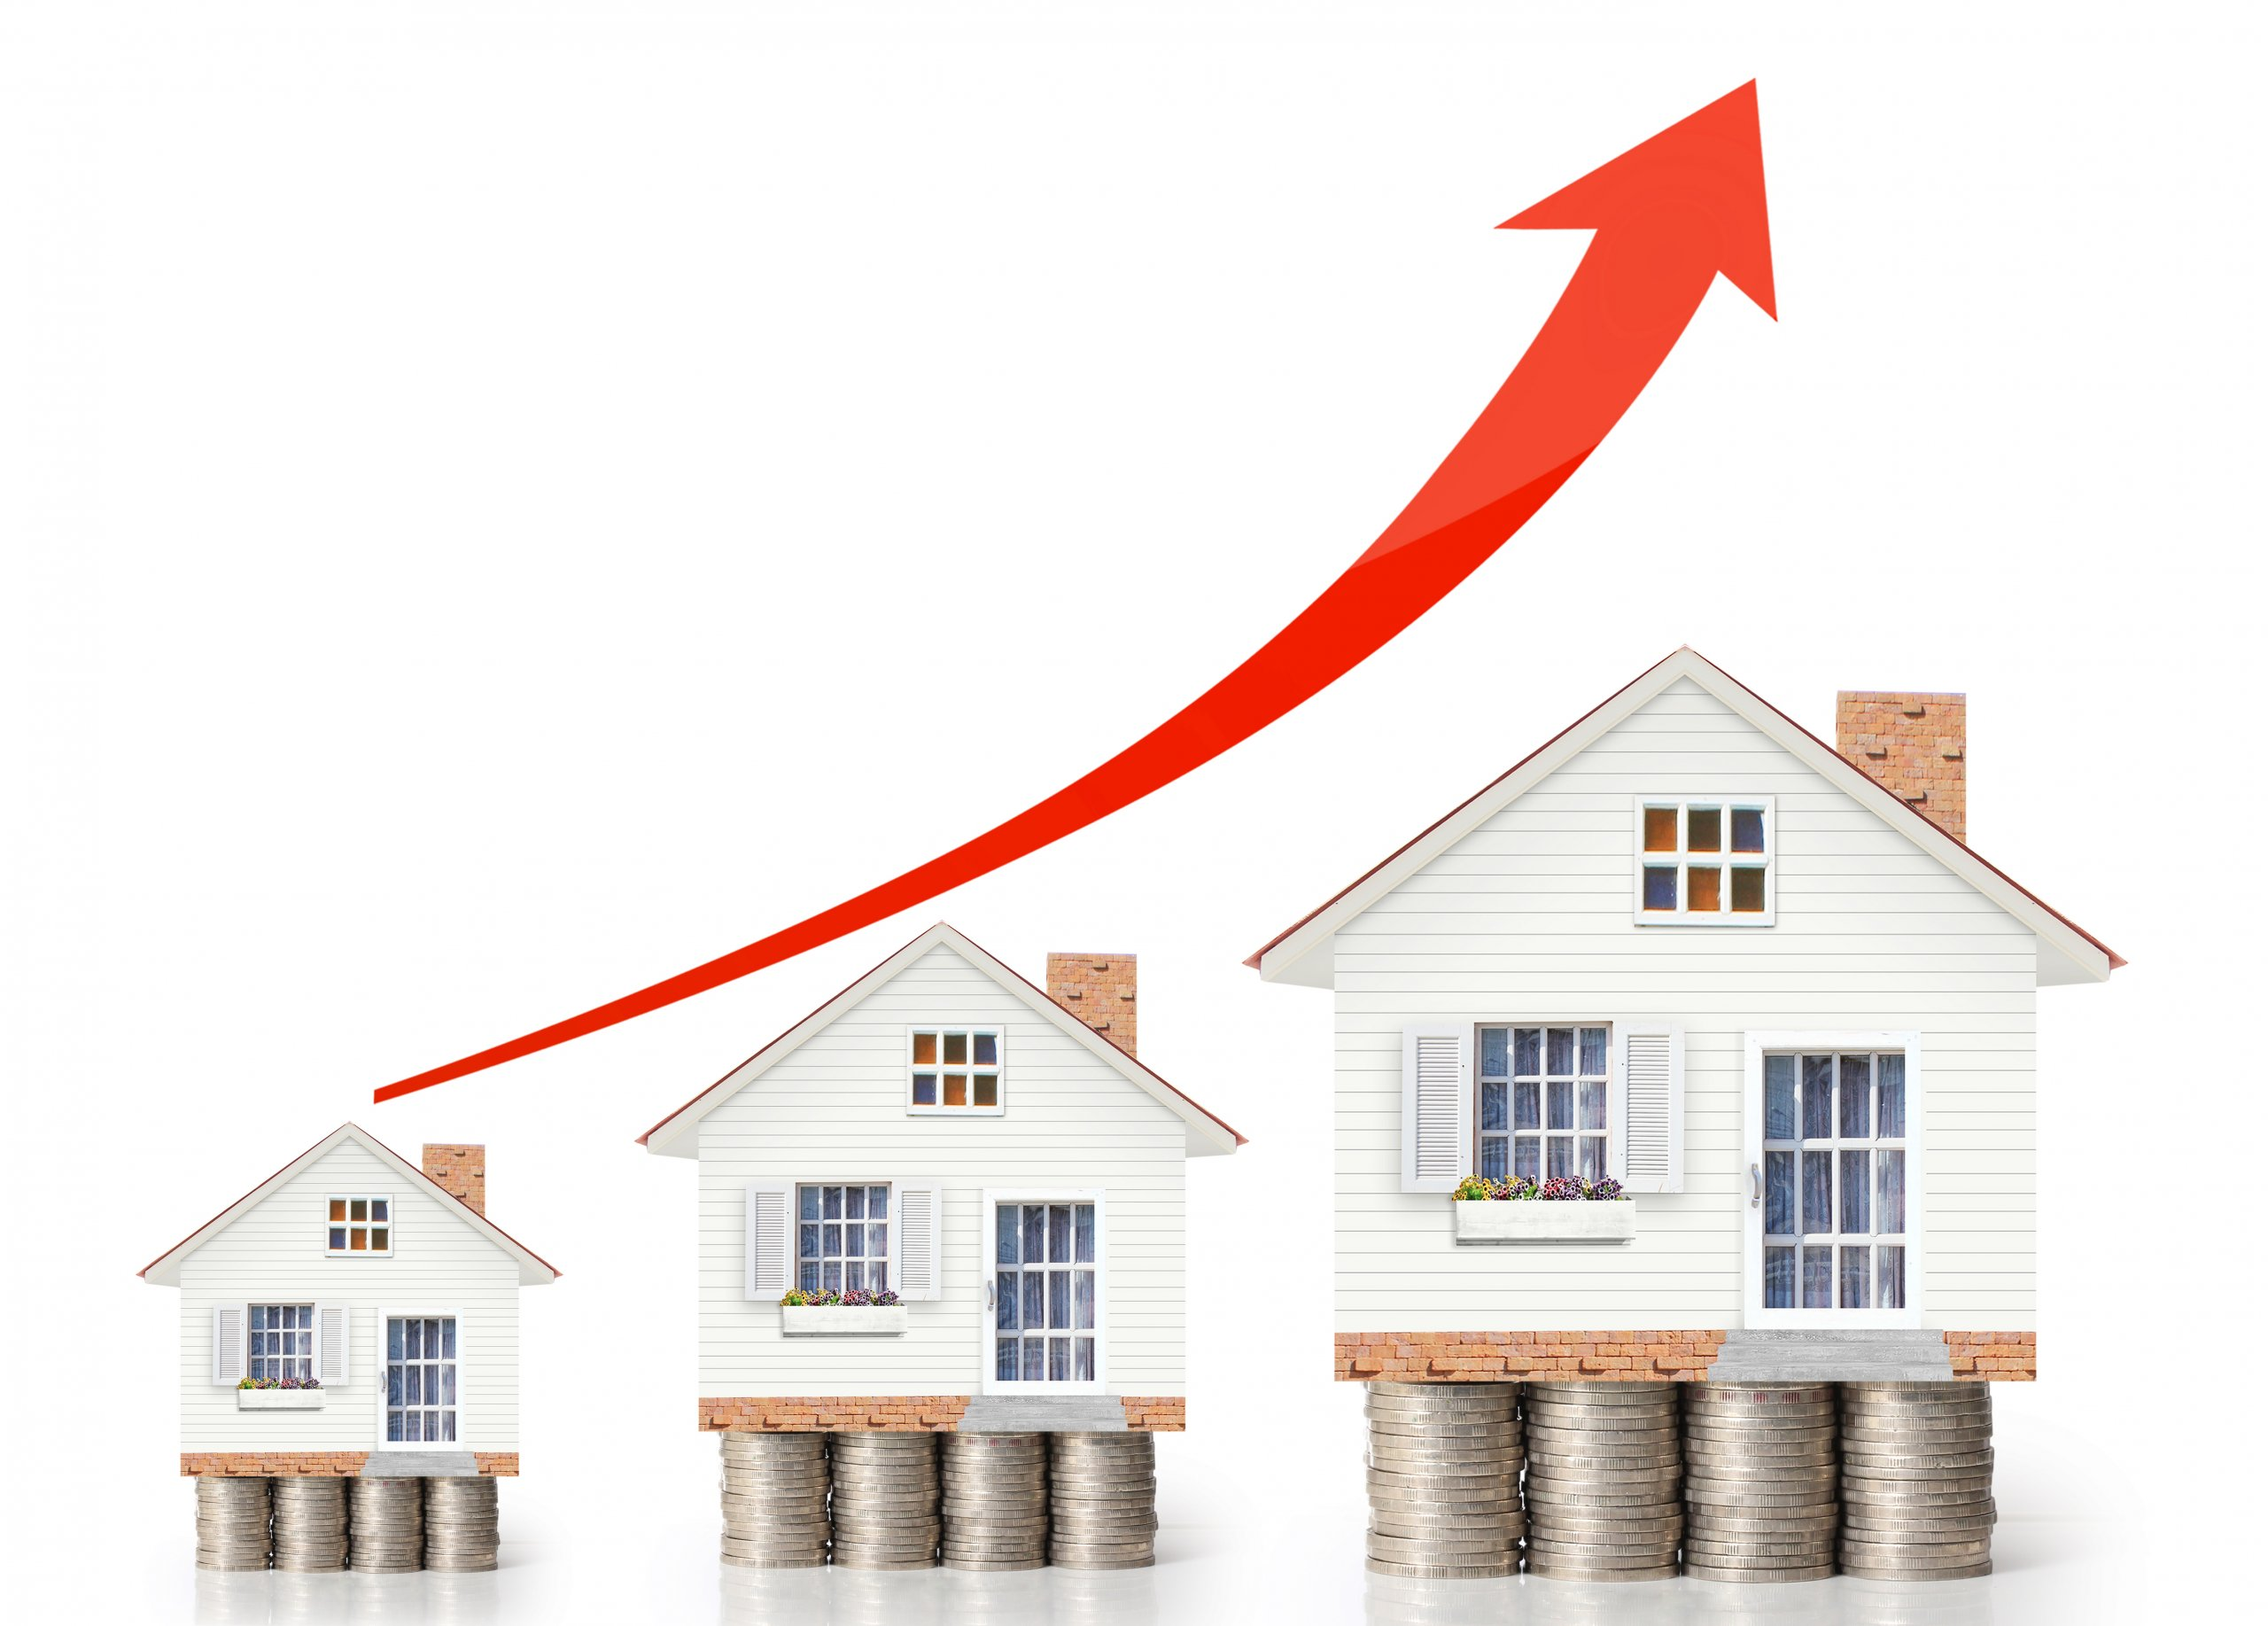 The value your reonvation adds to your property